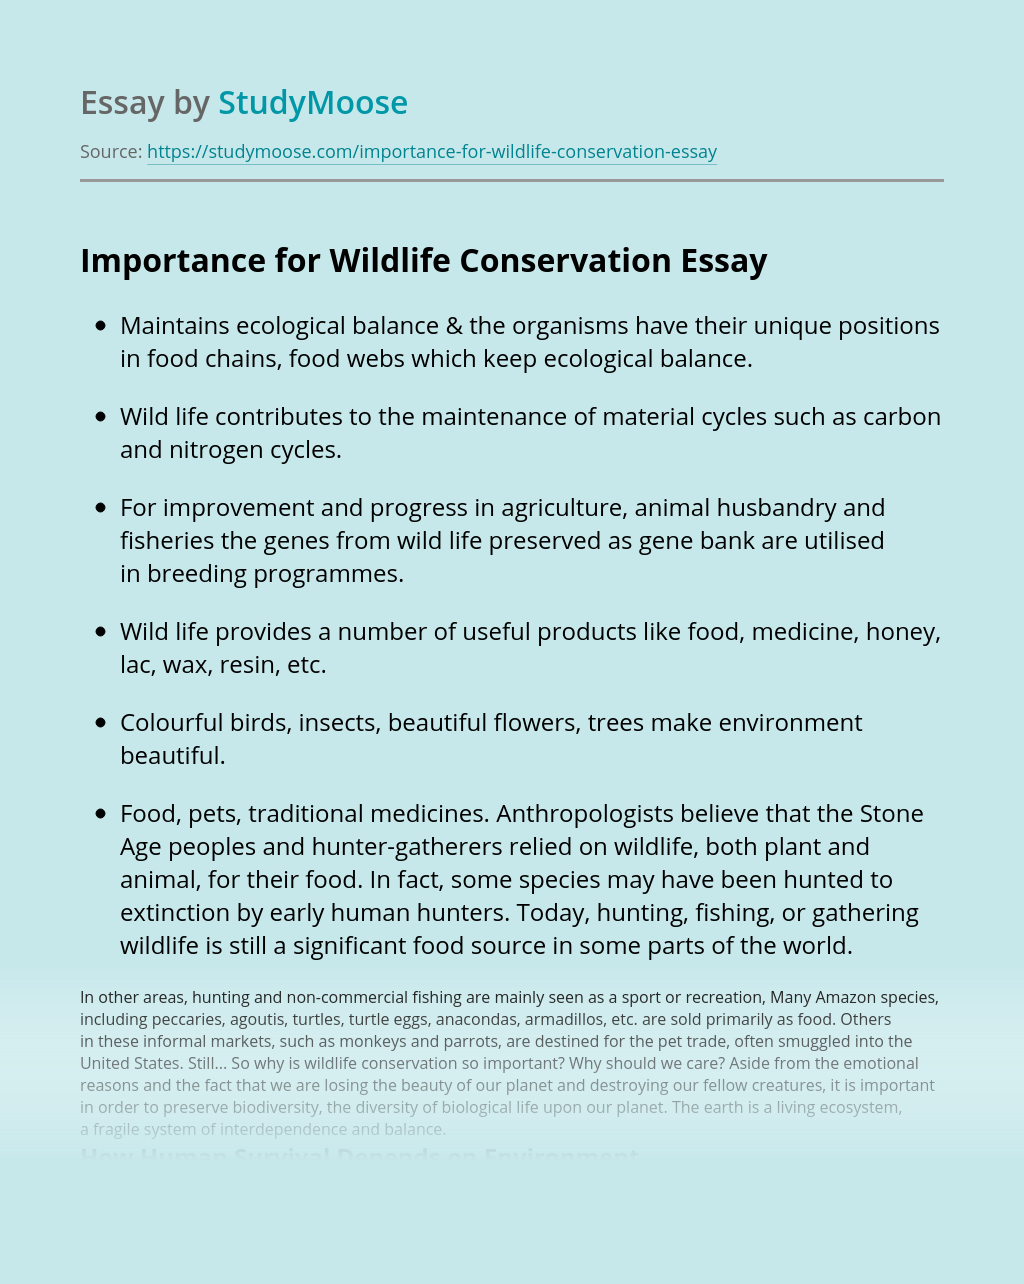 Importance for Wildlife Conservation